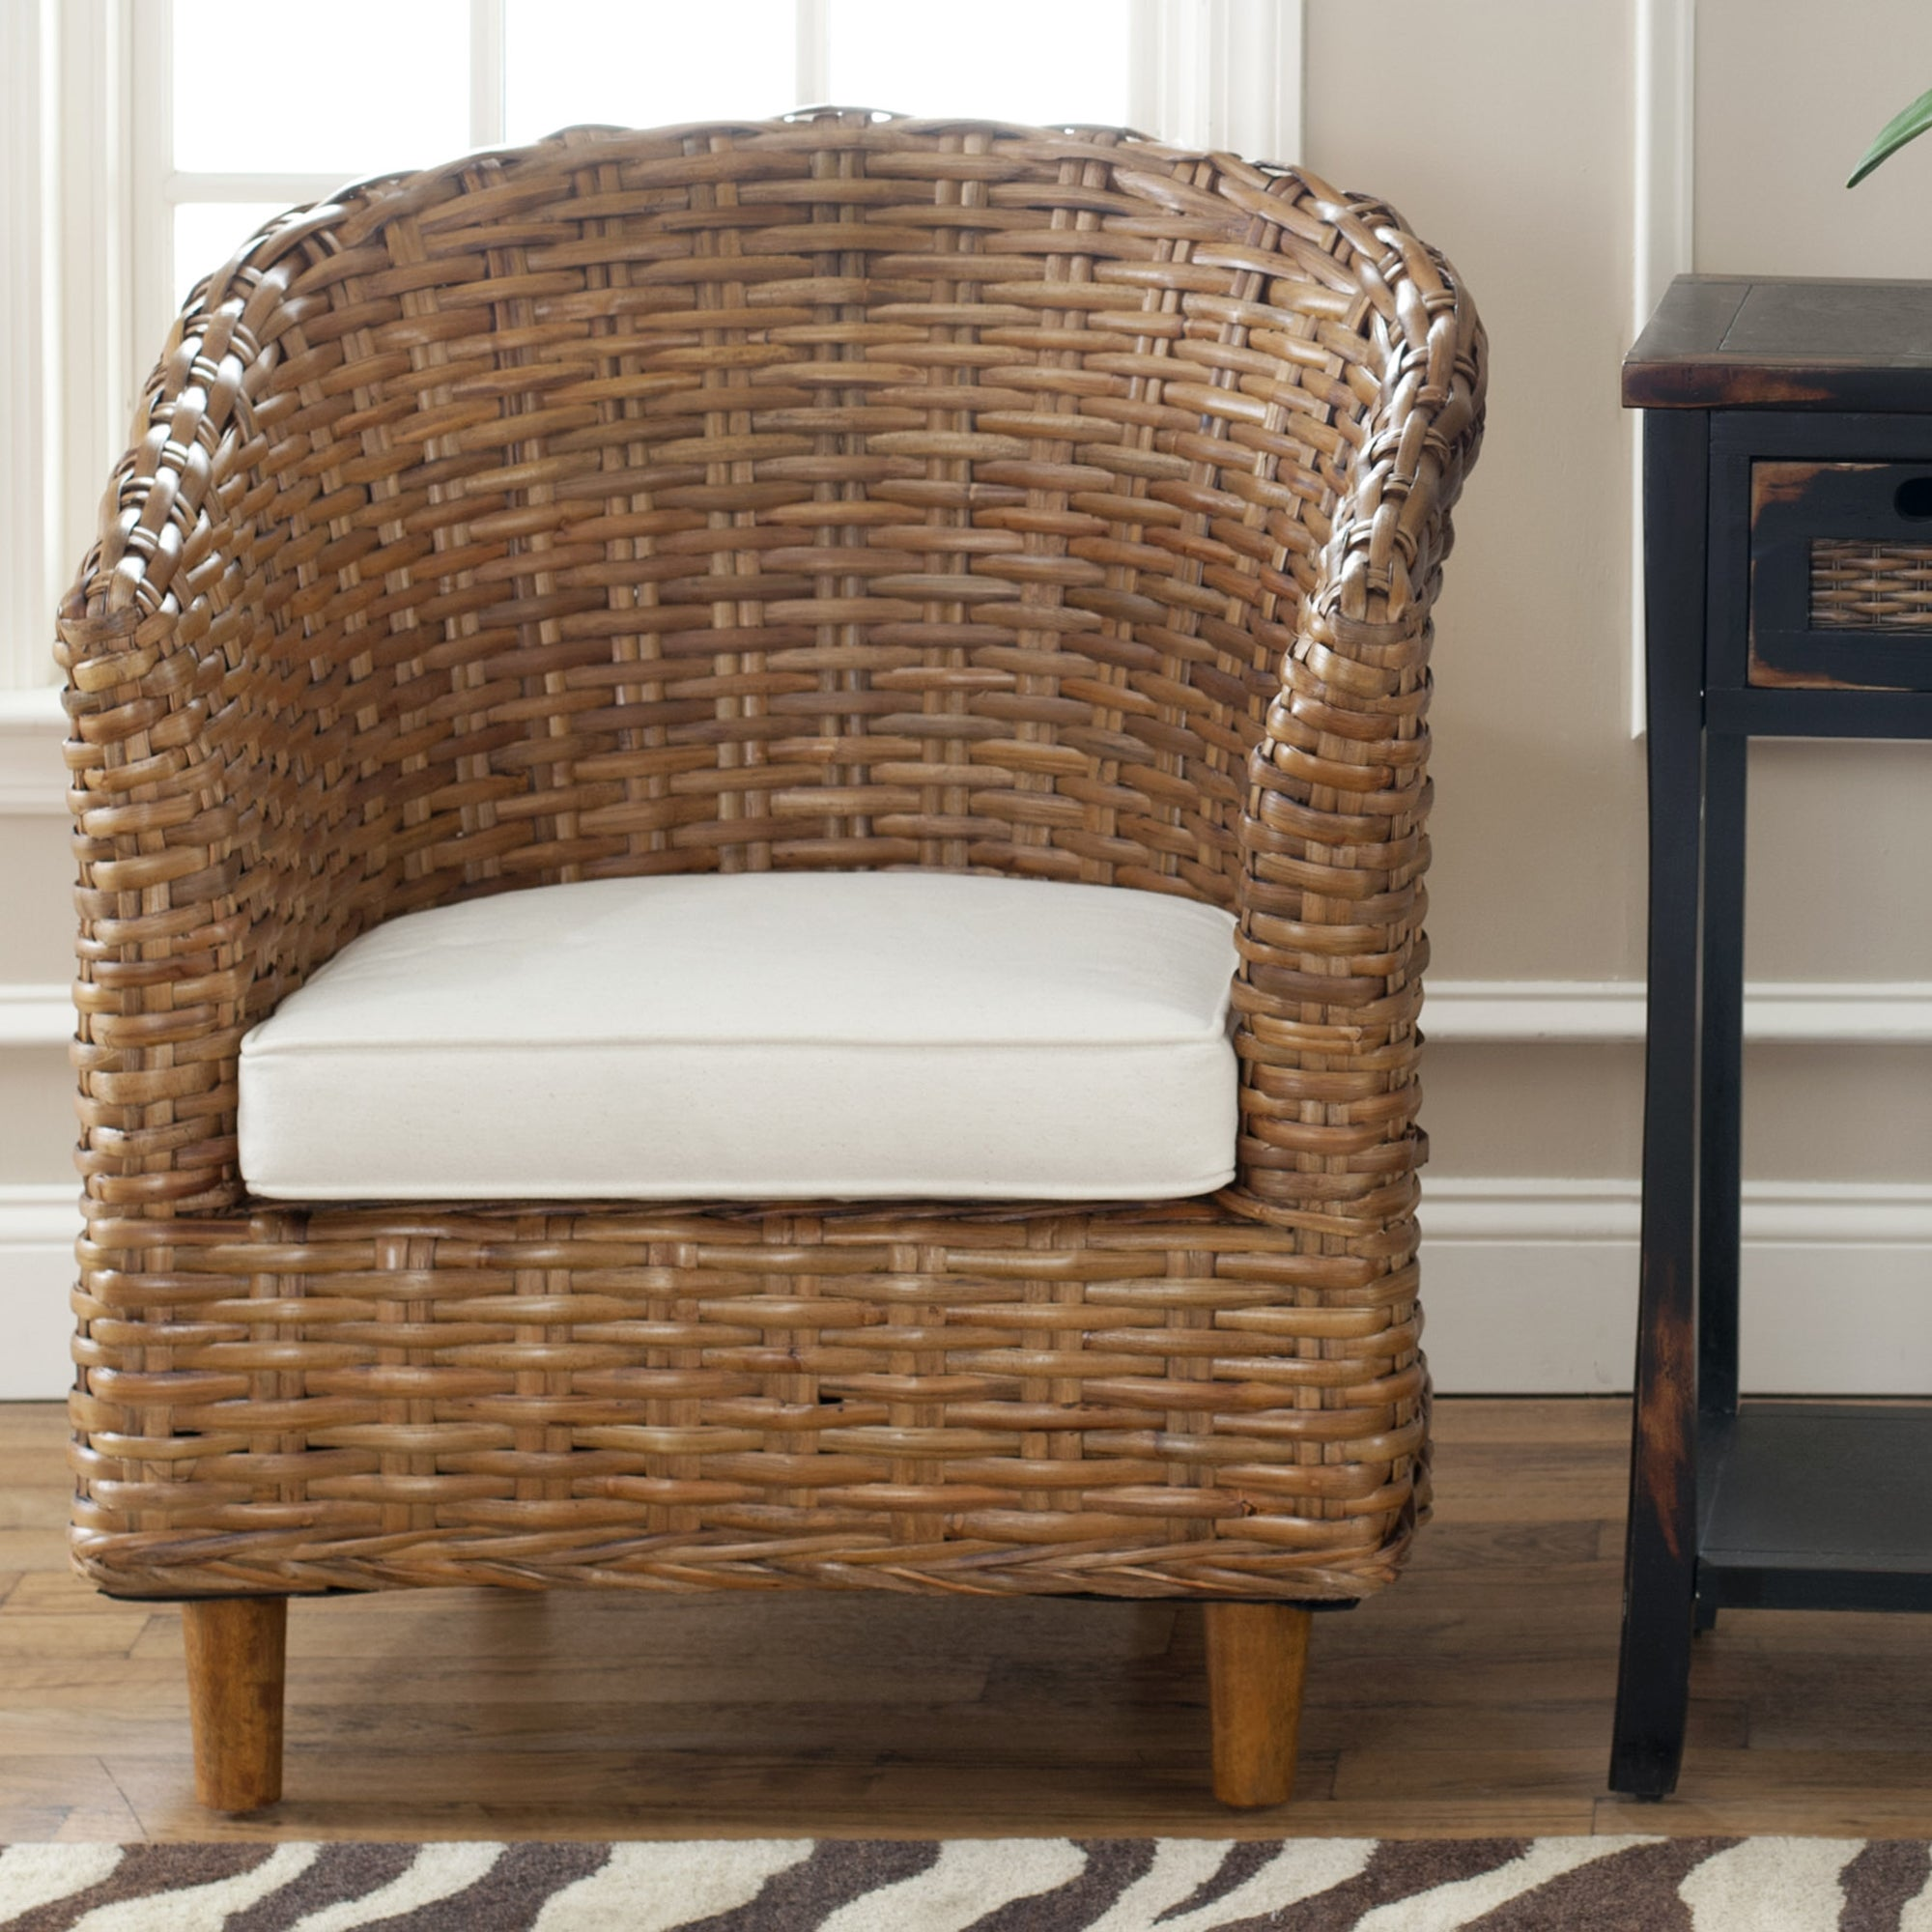 Captivating Safavieh St. Thomas Indoor Wicker Honey Brown Barrel Chair   Free Shipping  Today   Overstock   13968652